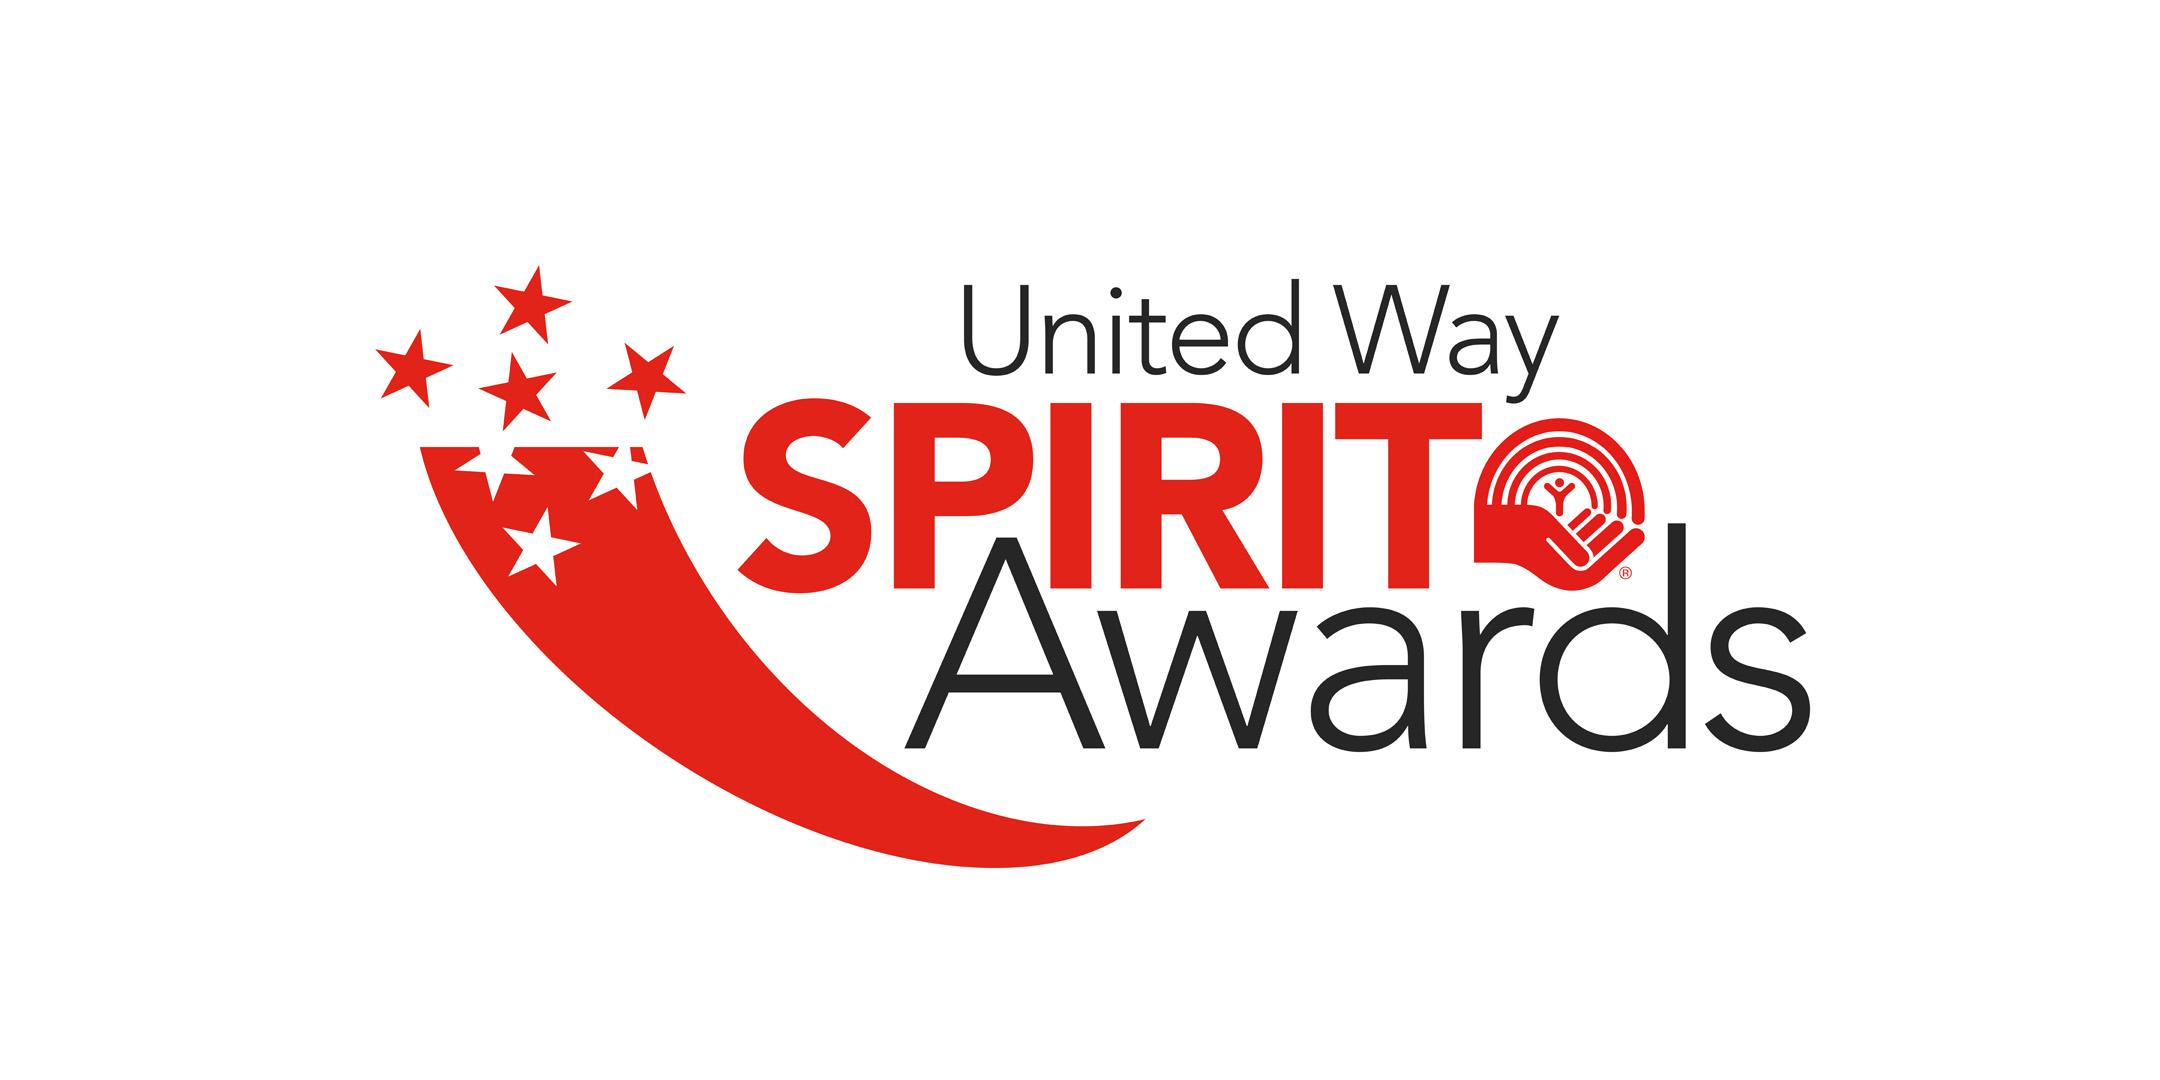 United Way Spirit Awards logo